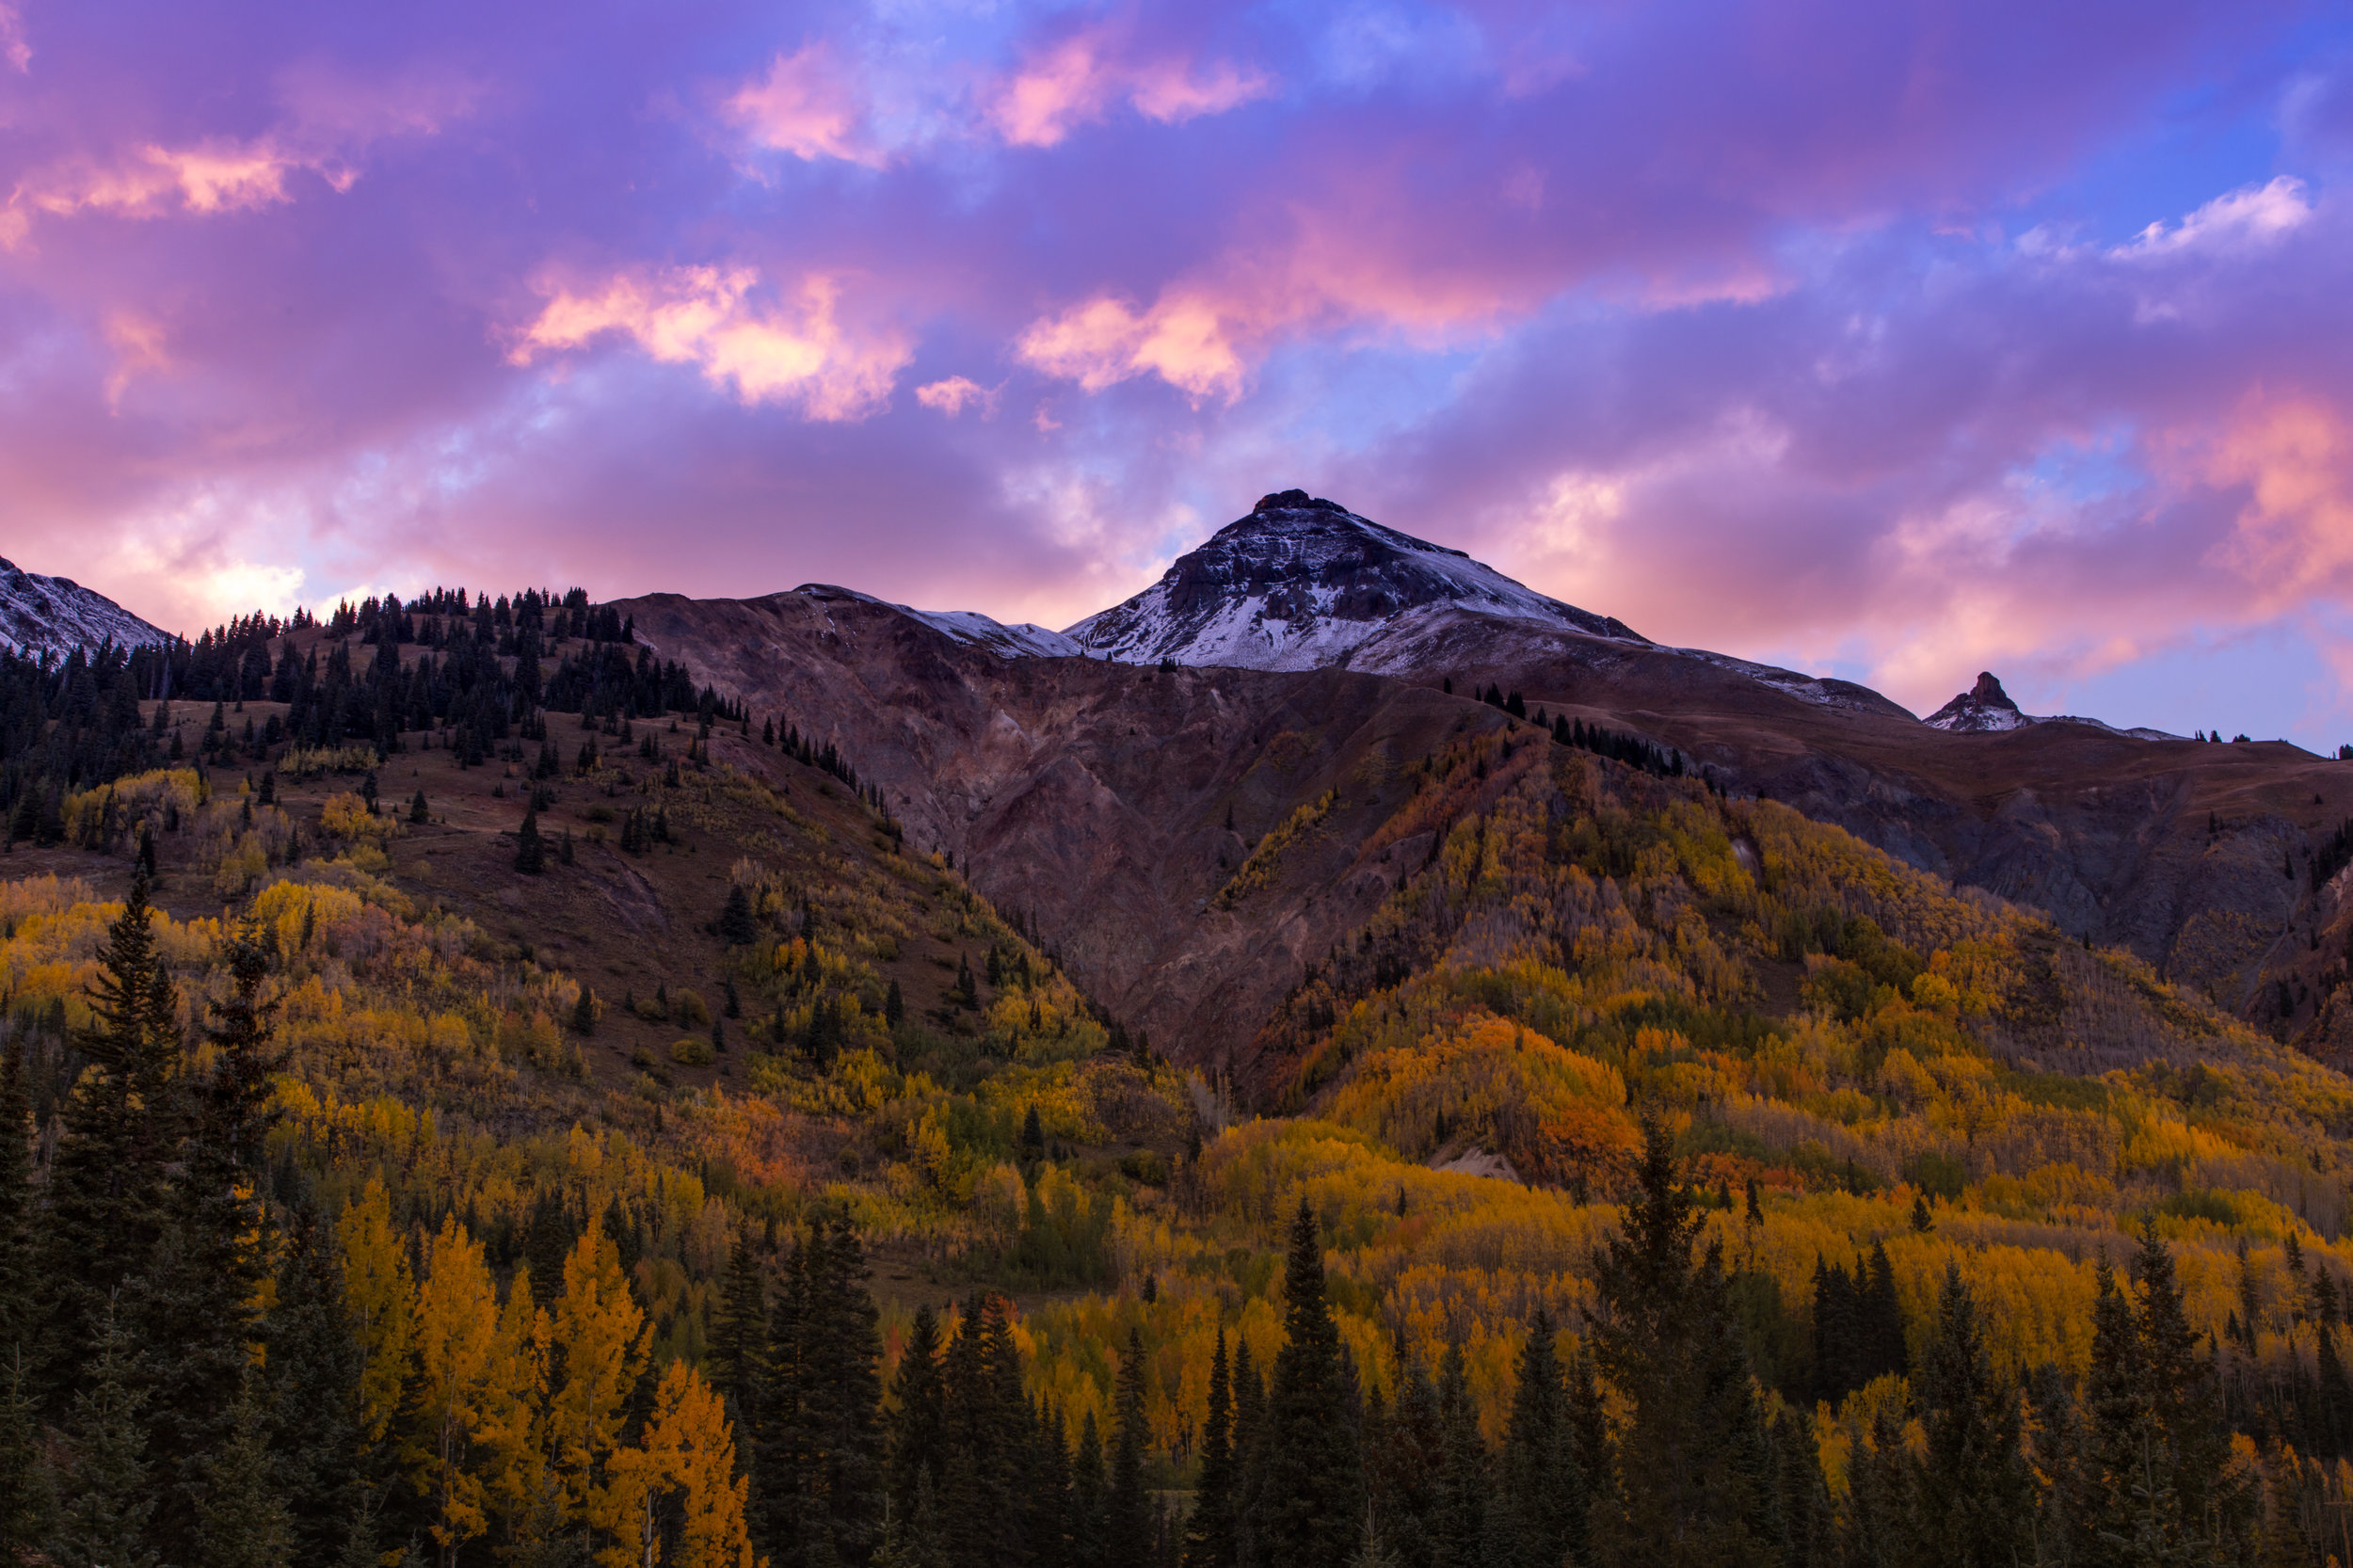 Red Mountain Sunset, Image # 5338